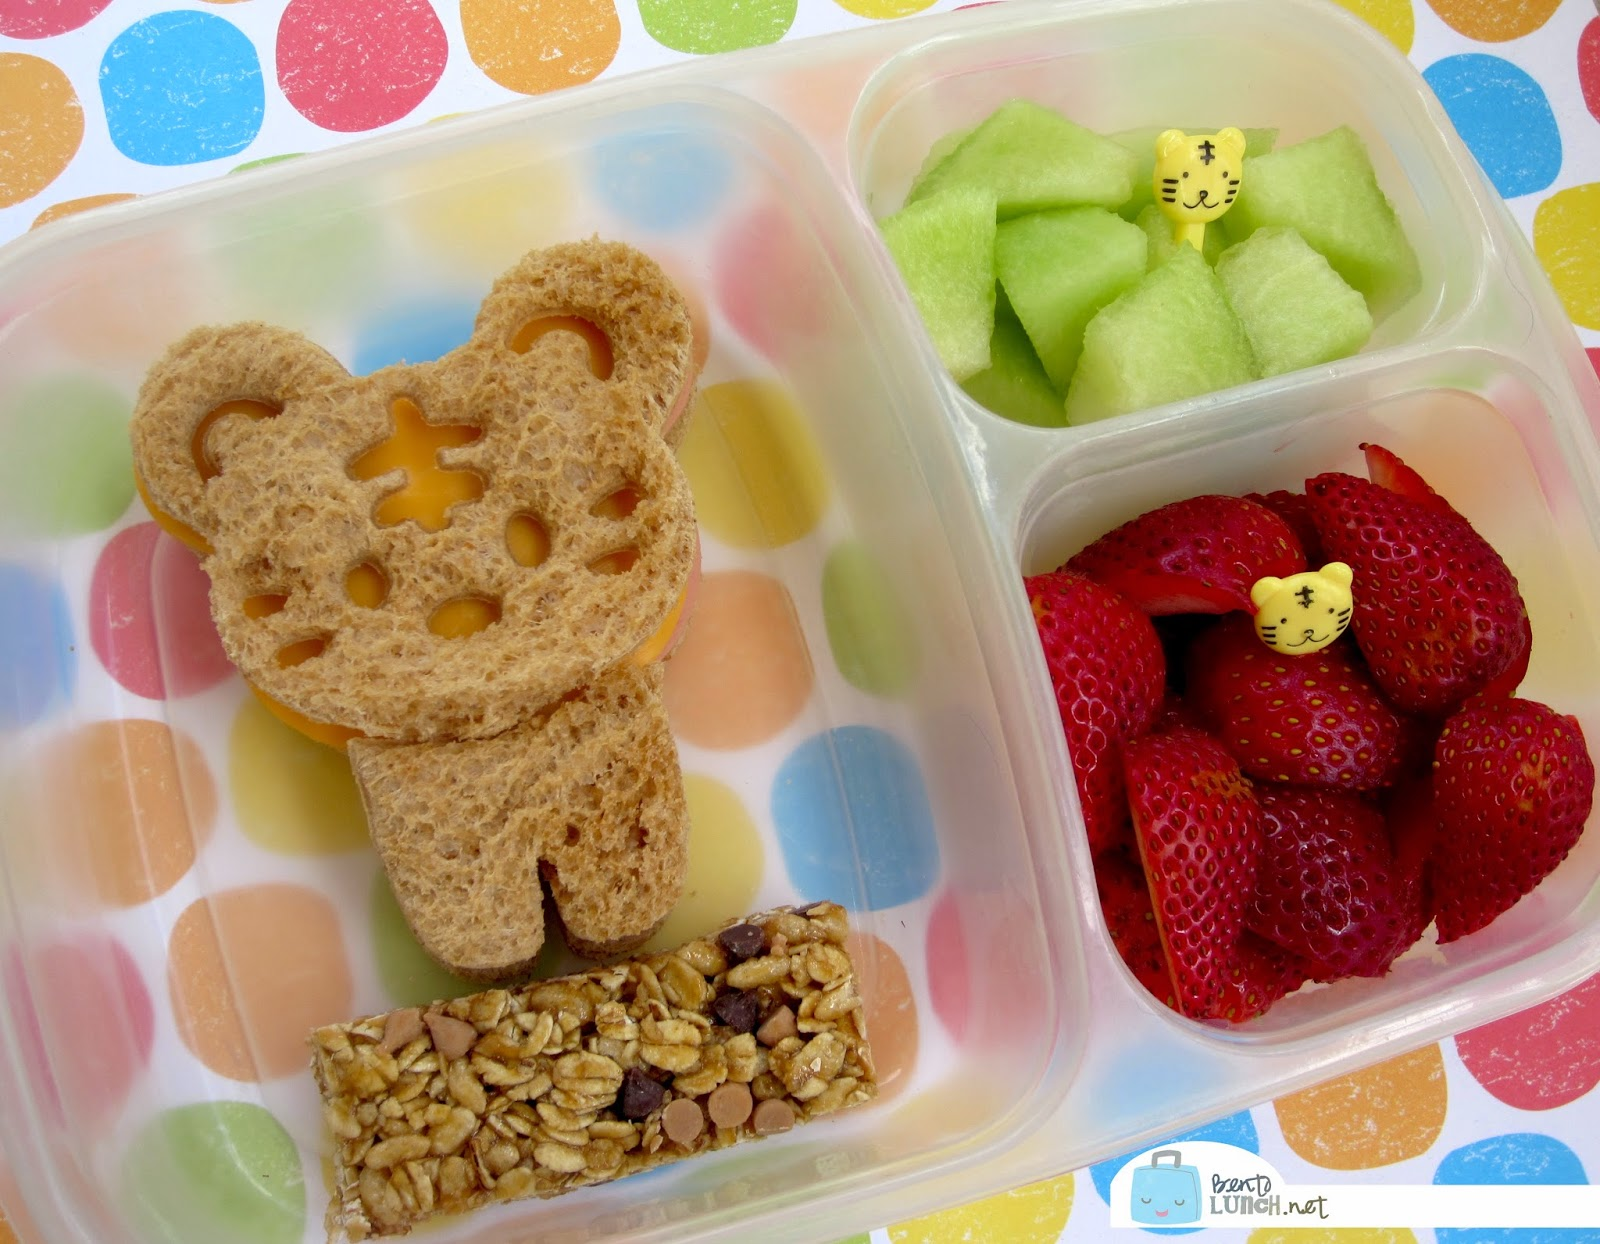 Cuddle Palz from CutezCute Bento in EasyLunchboxes